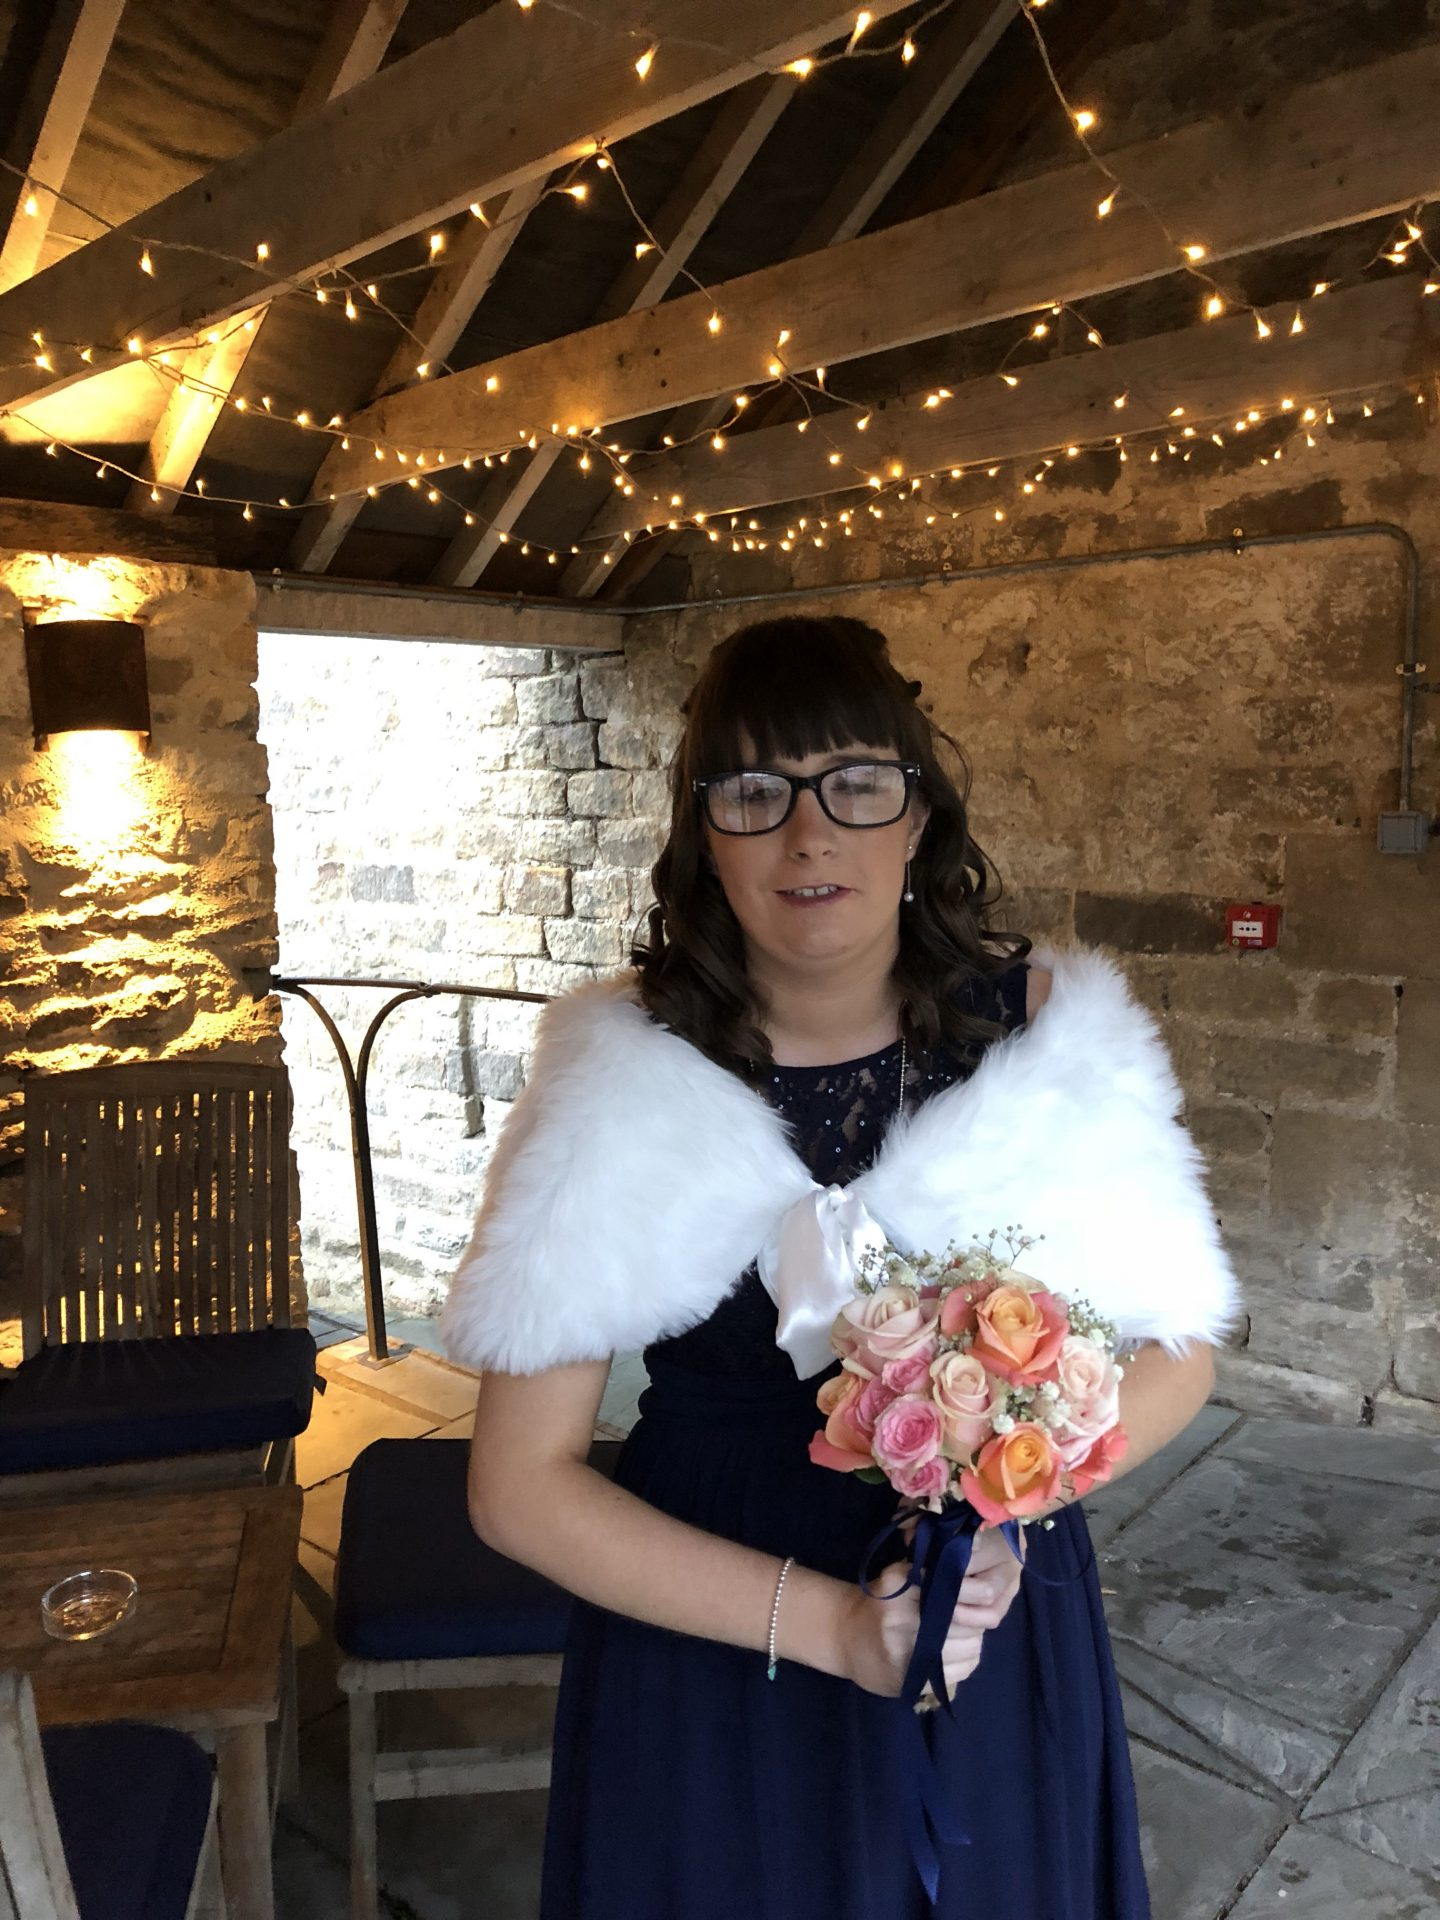 Holly wearing a blue bridesmaid dress, fur shrug and holding a bouquet